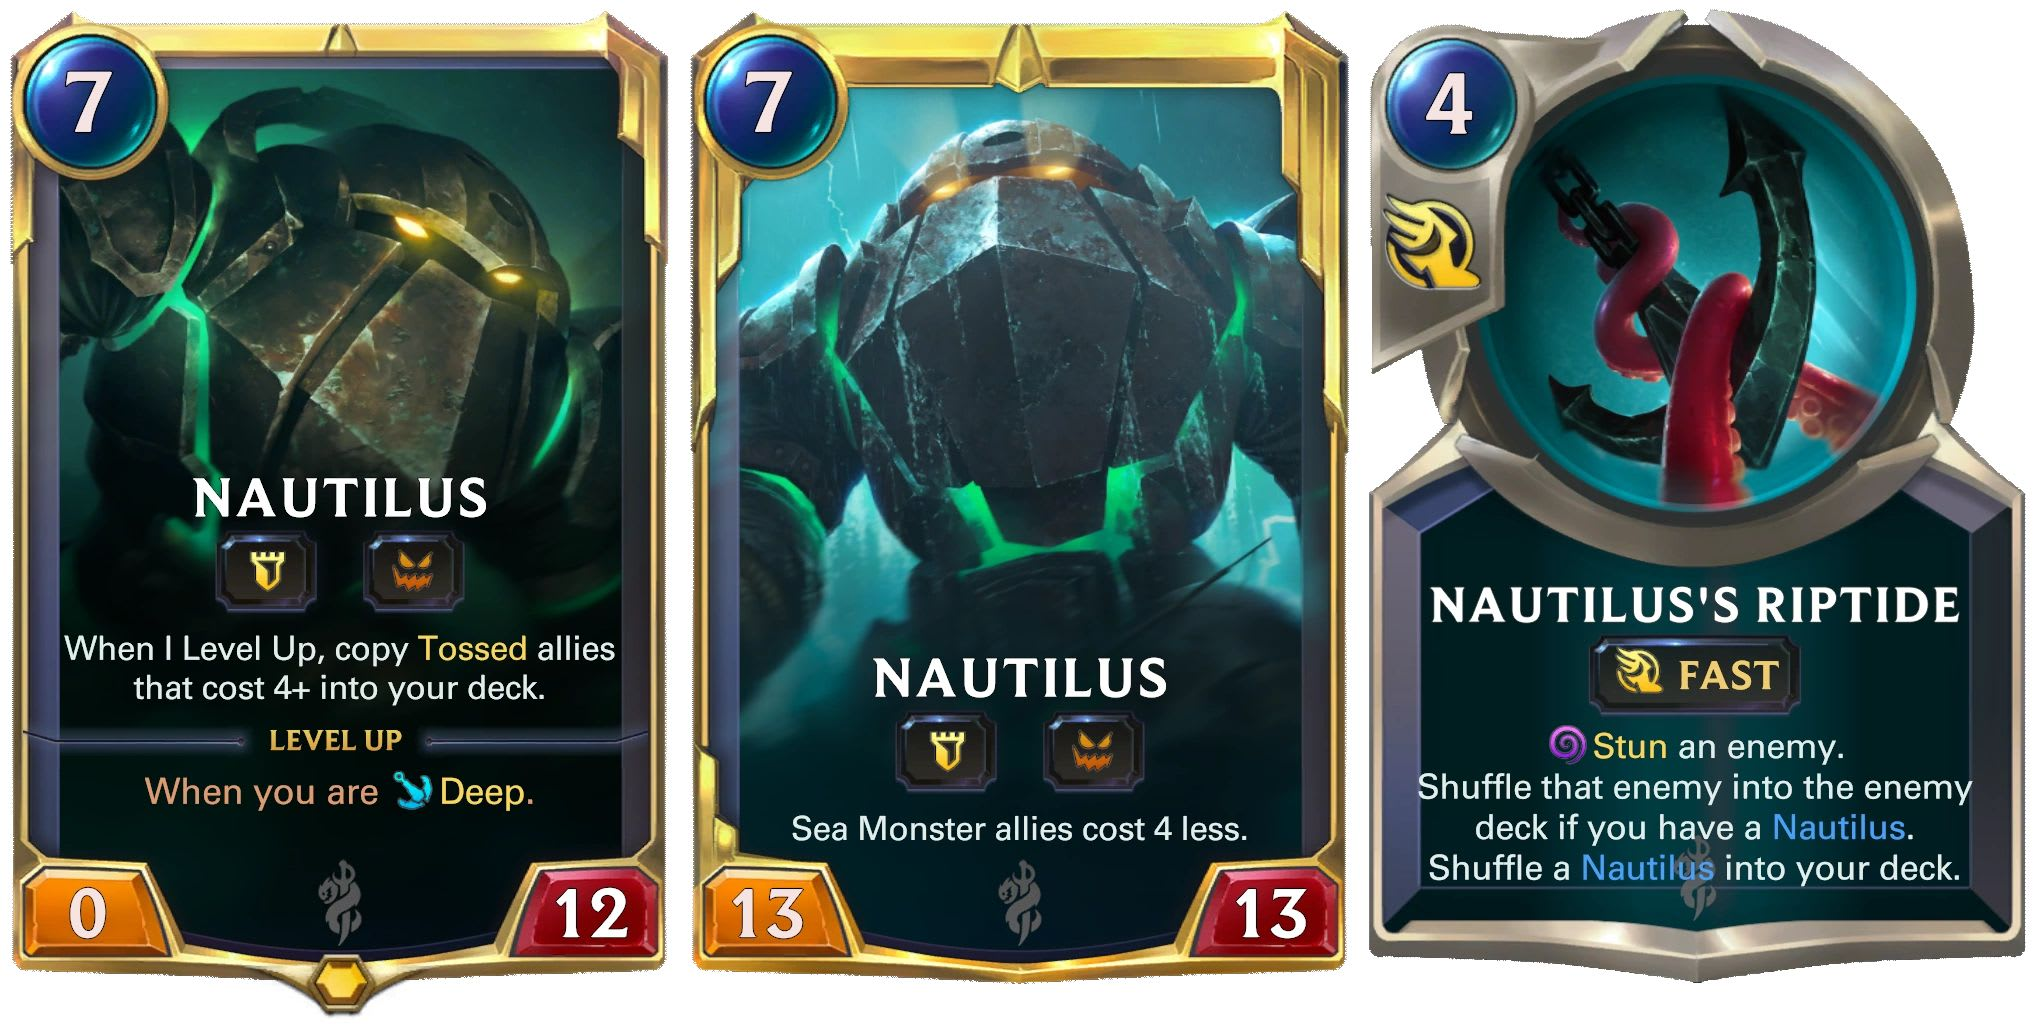 Nautilus, Legends of Runeterra.